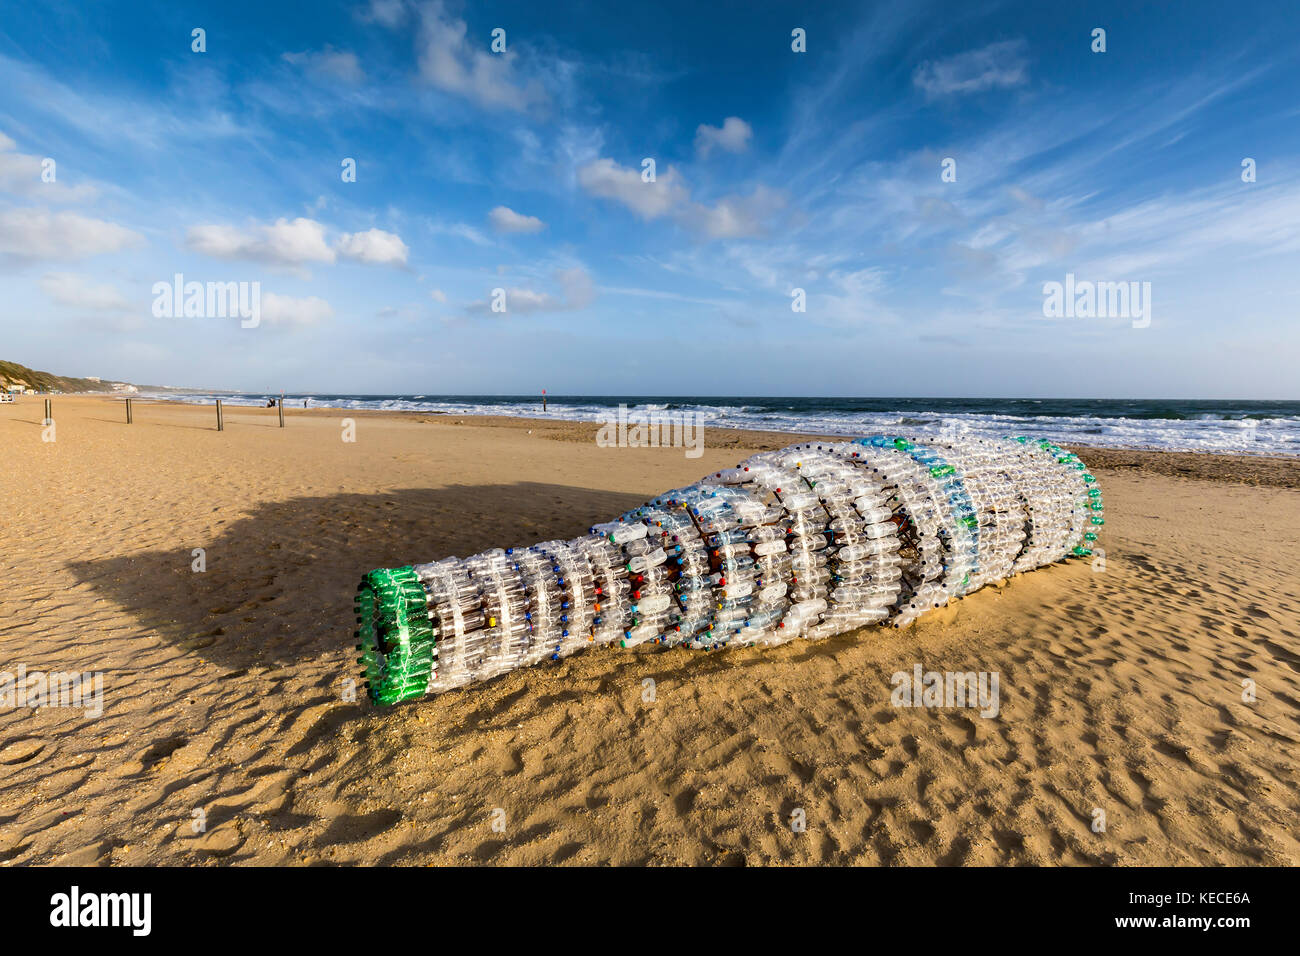 'Message in a Bottle' is an 8-meter long  bottle made from plastic bottles washed up on the beach. It is part of - Stock Image